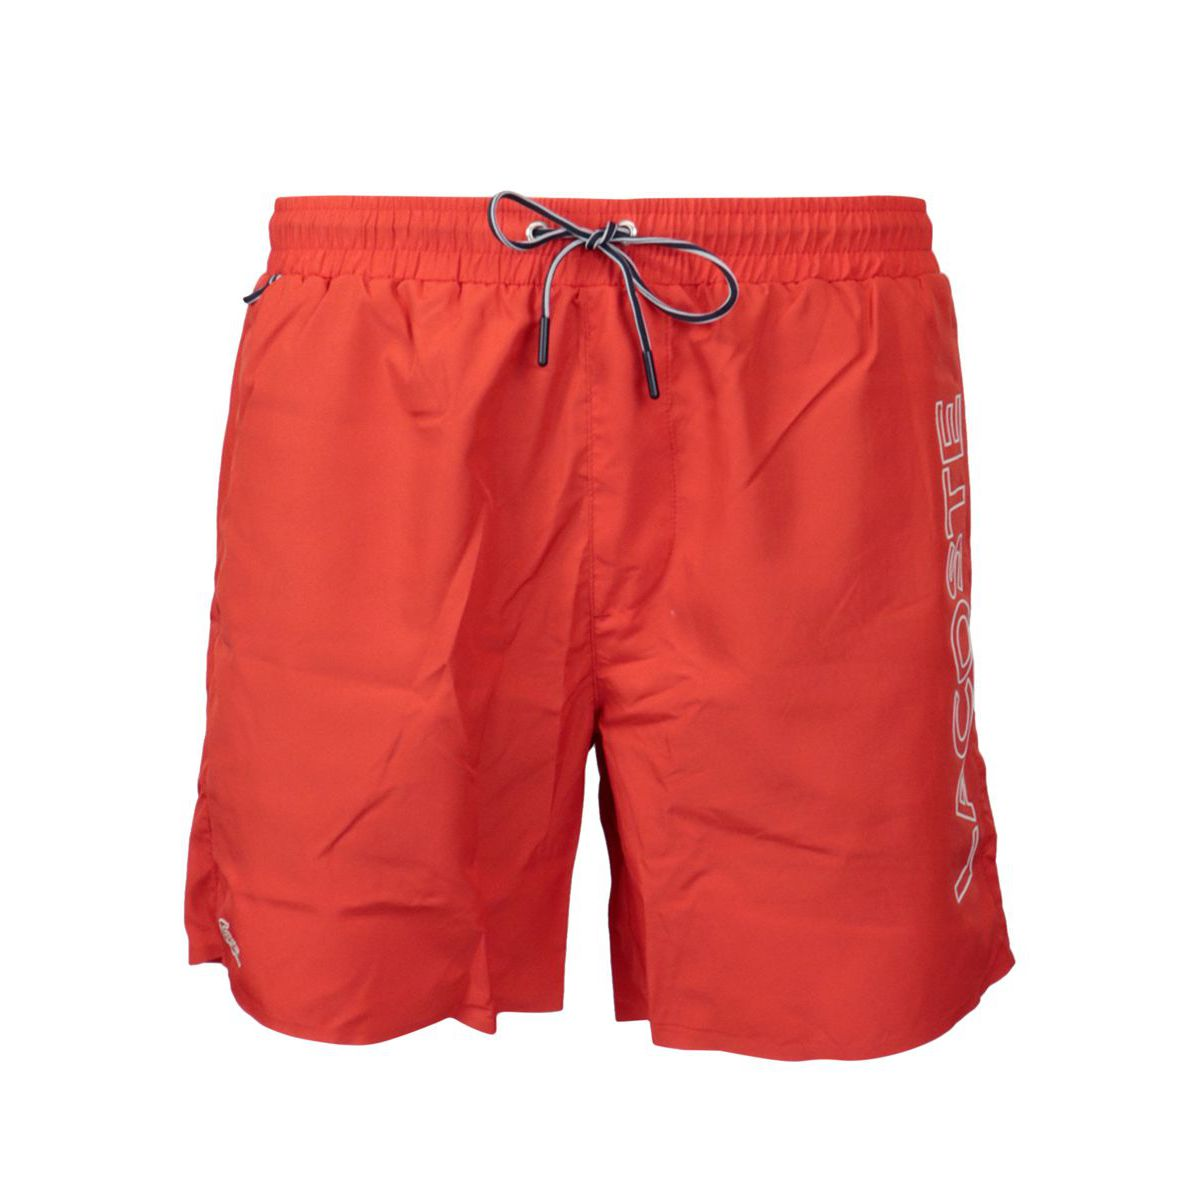 Beach shorts with laces and side logo Coral Lacoste